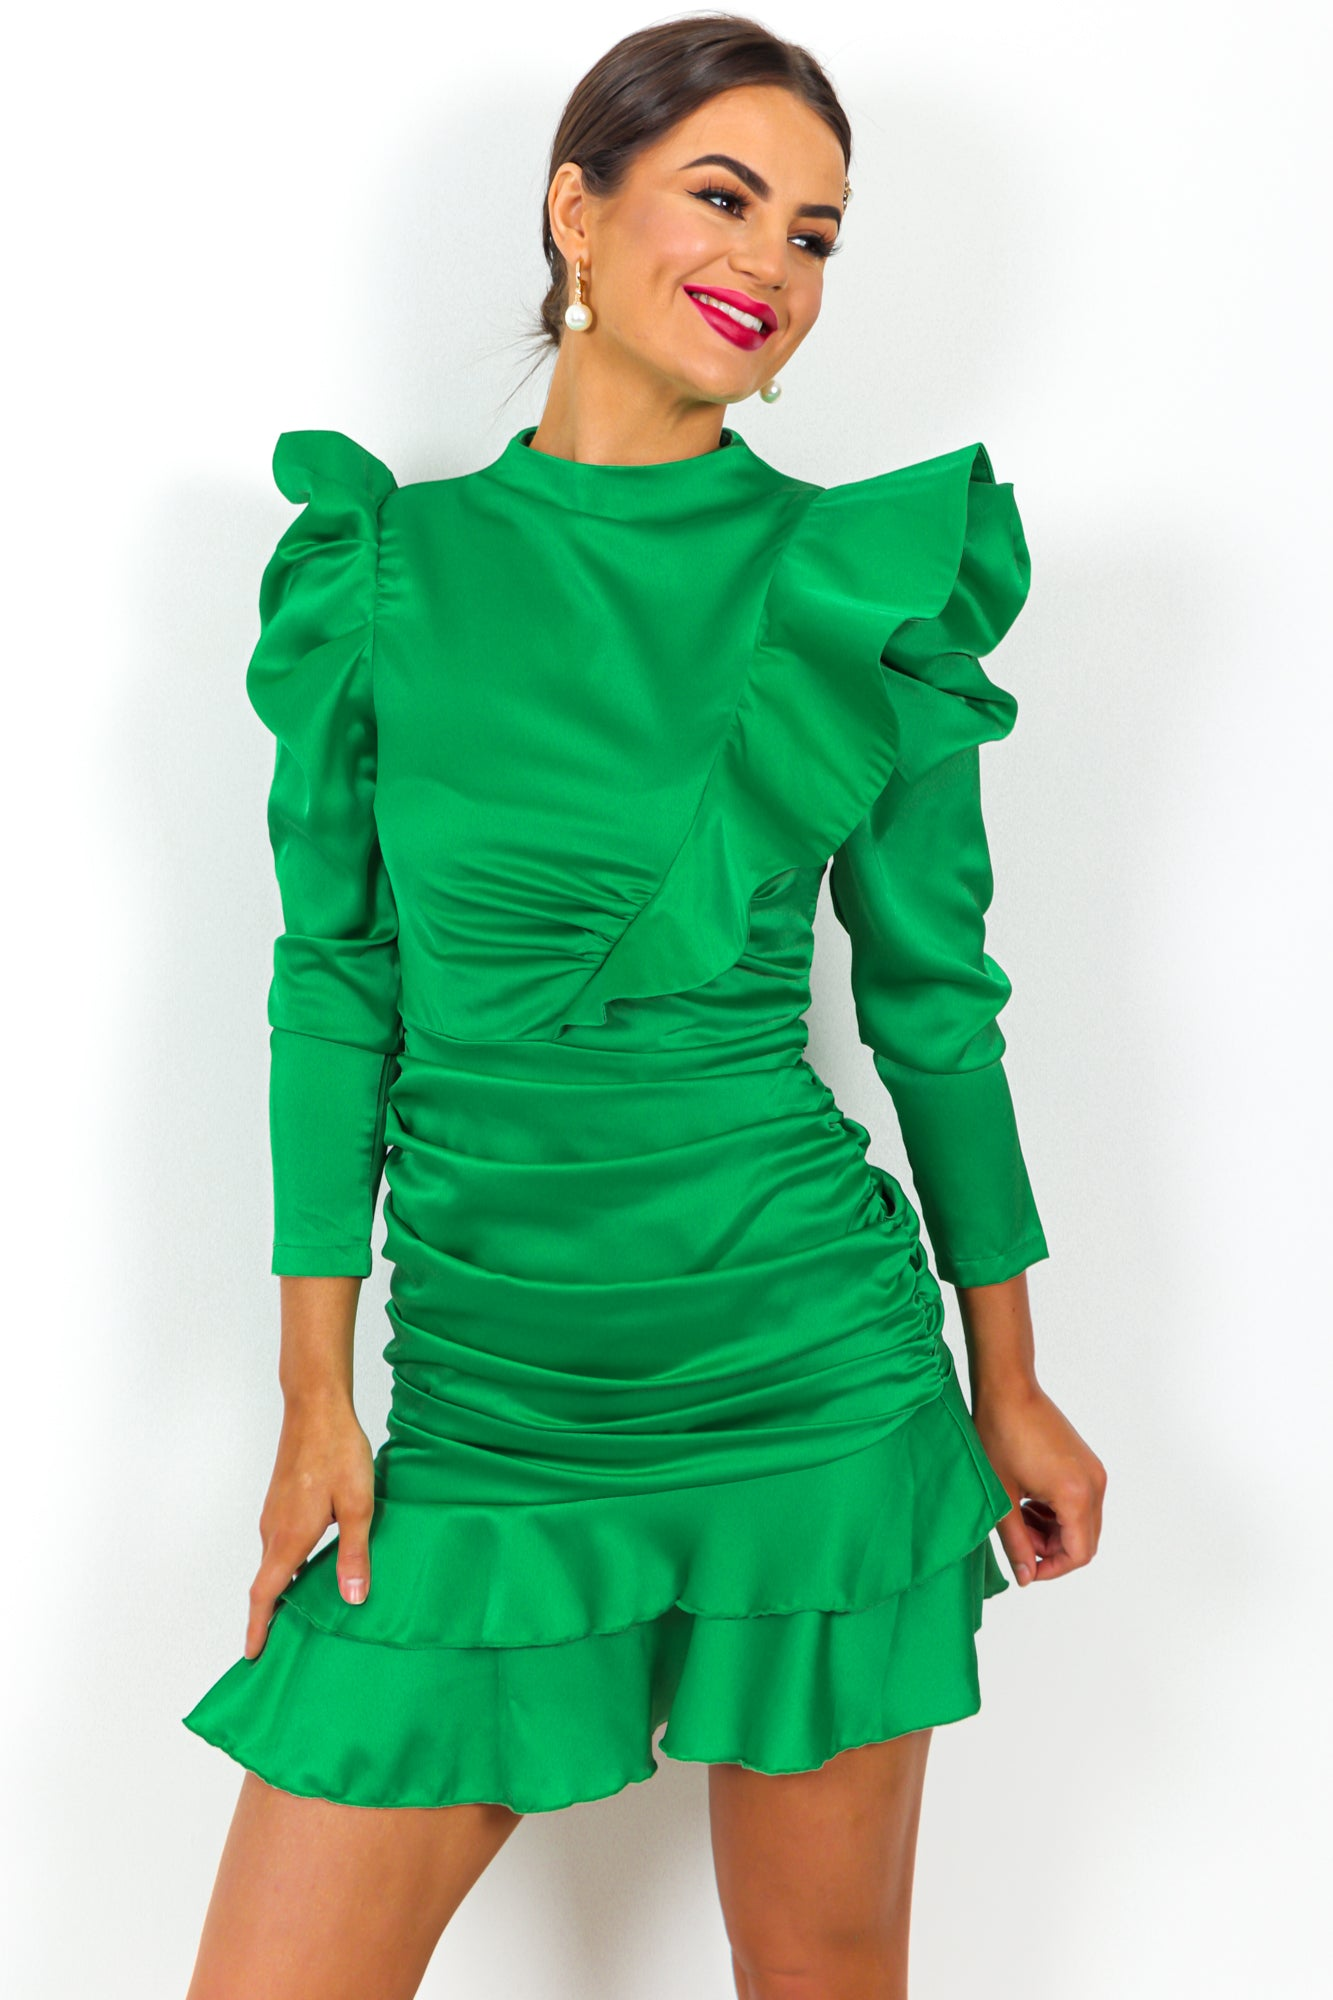 Ruche Hour - Dress In GREEN